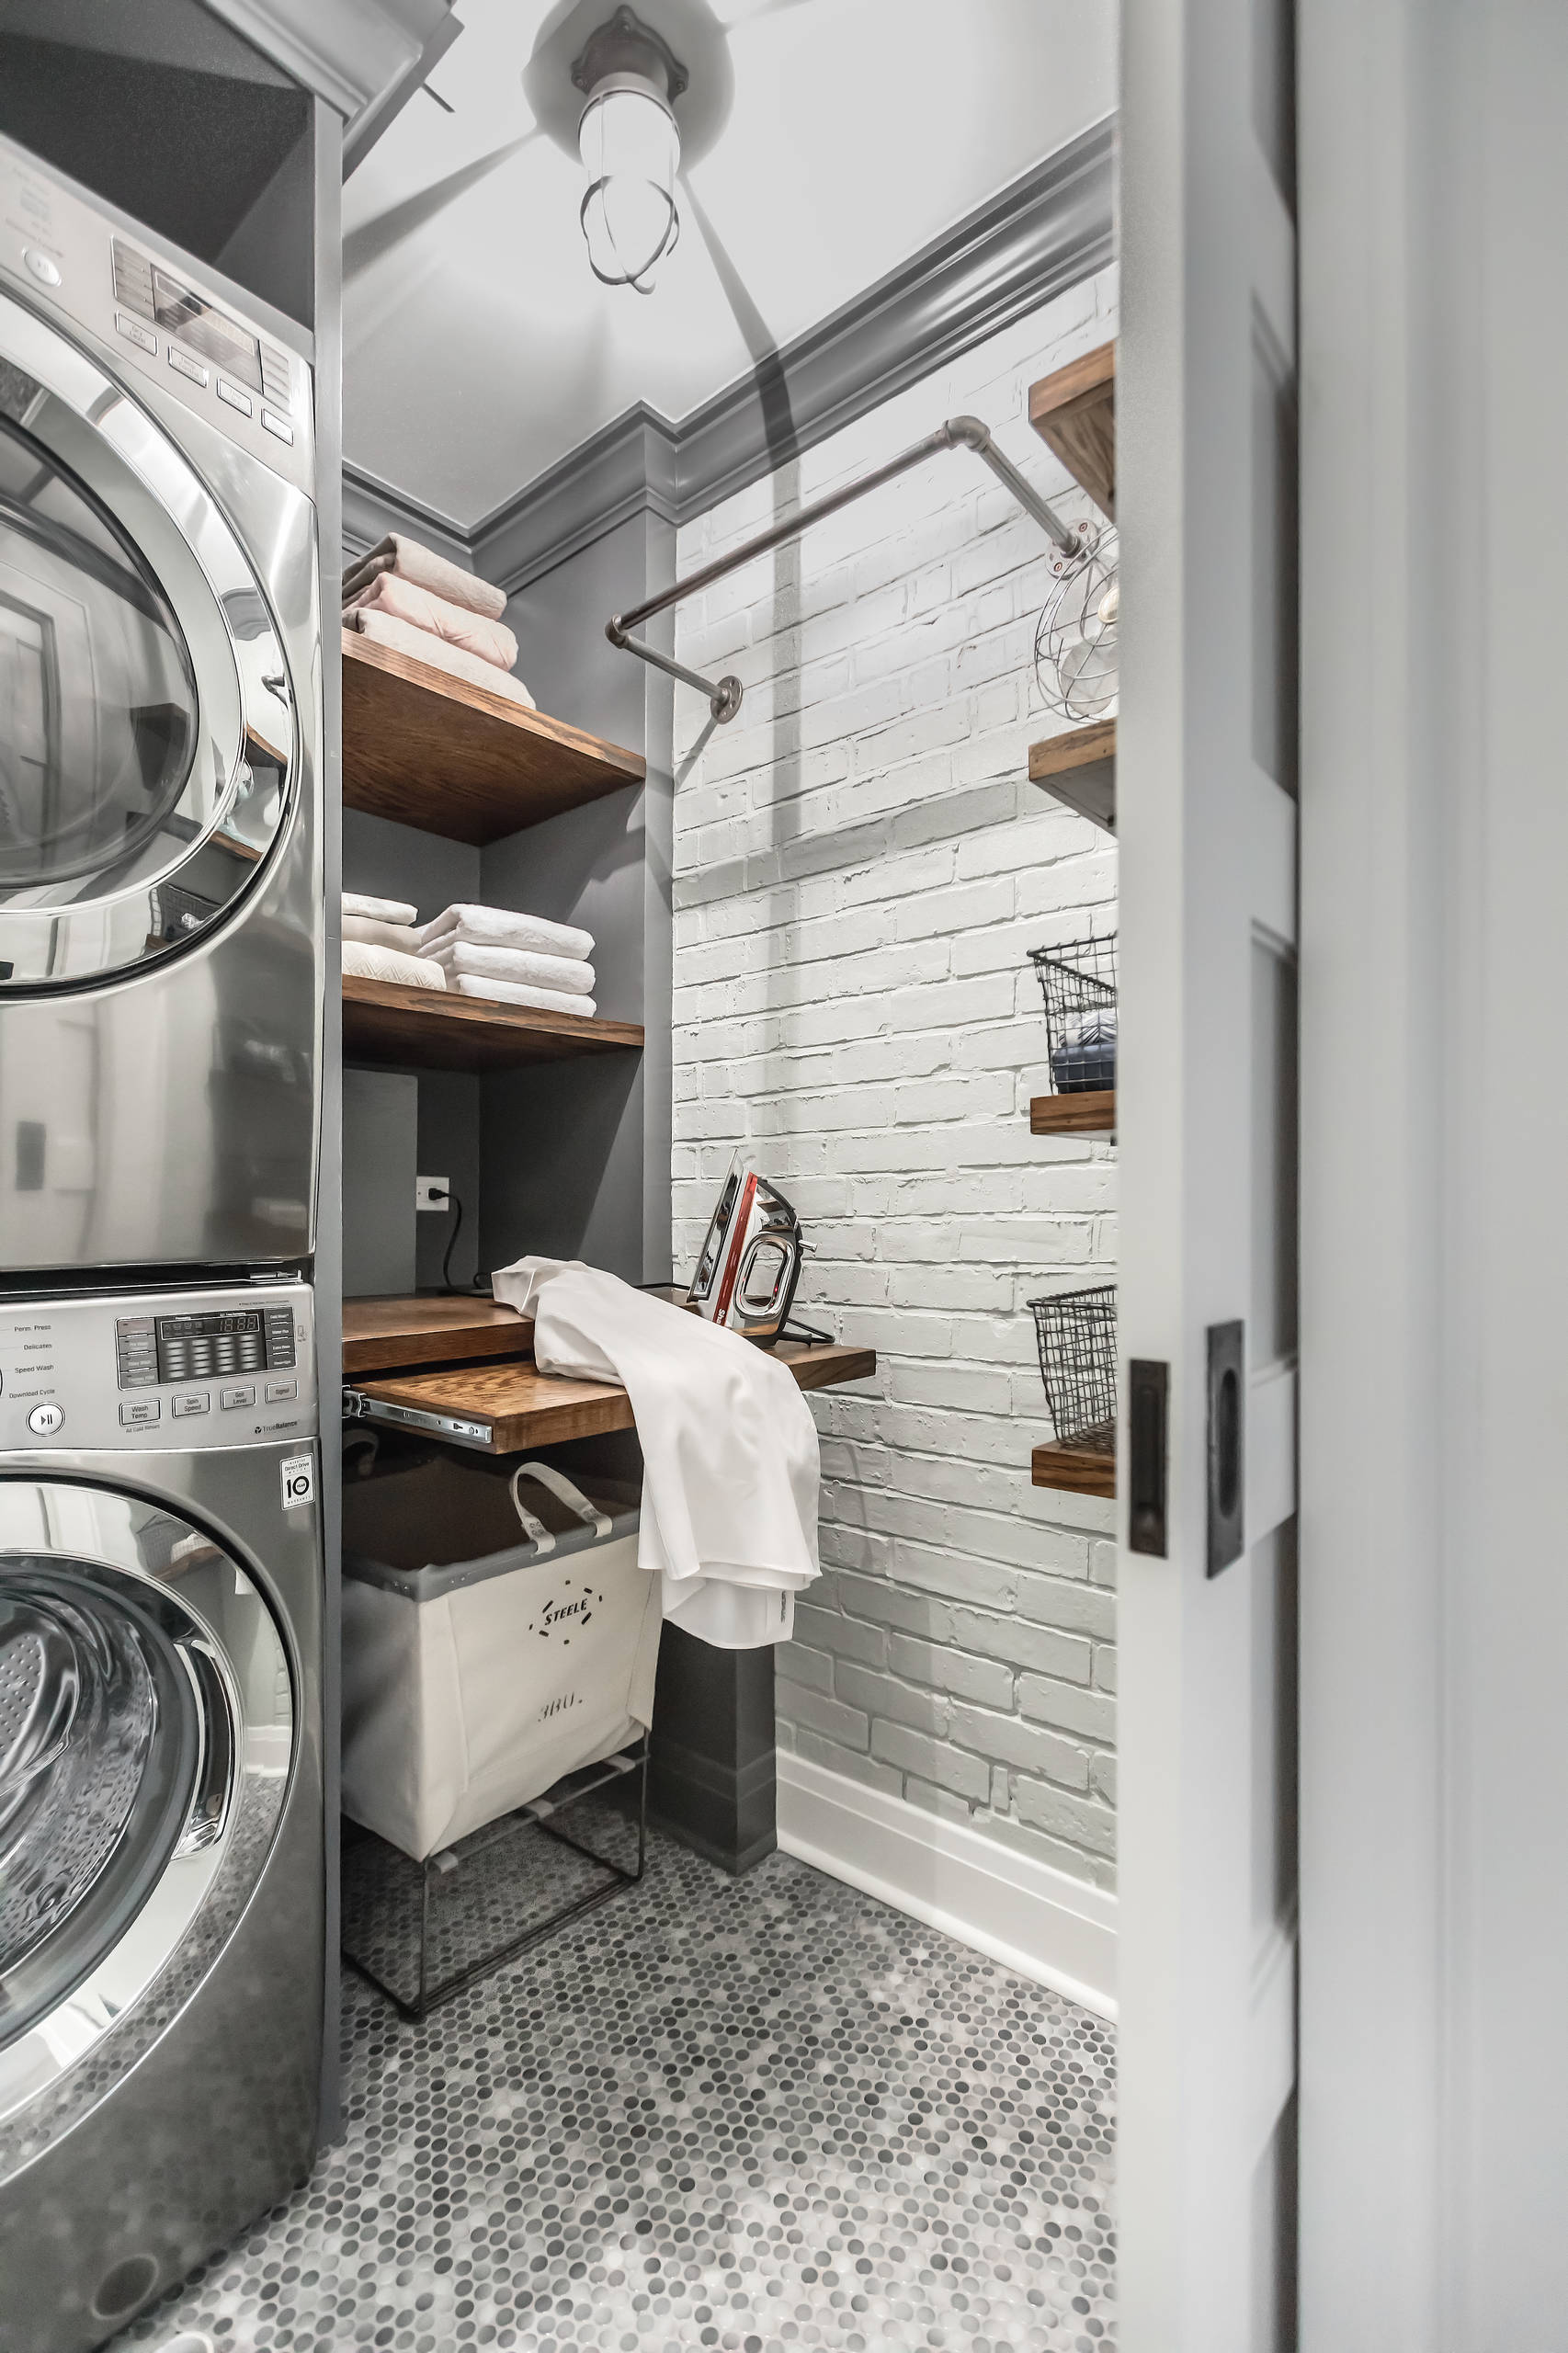 Washer without agitator pros and cons Industrial Laundry Room backpack boot storage cushion cover dark grey painted cabinets front load washer dryer grey cabinets